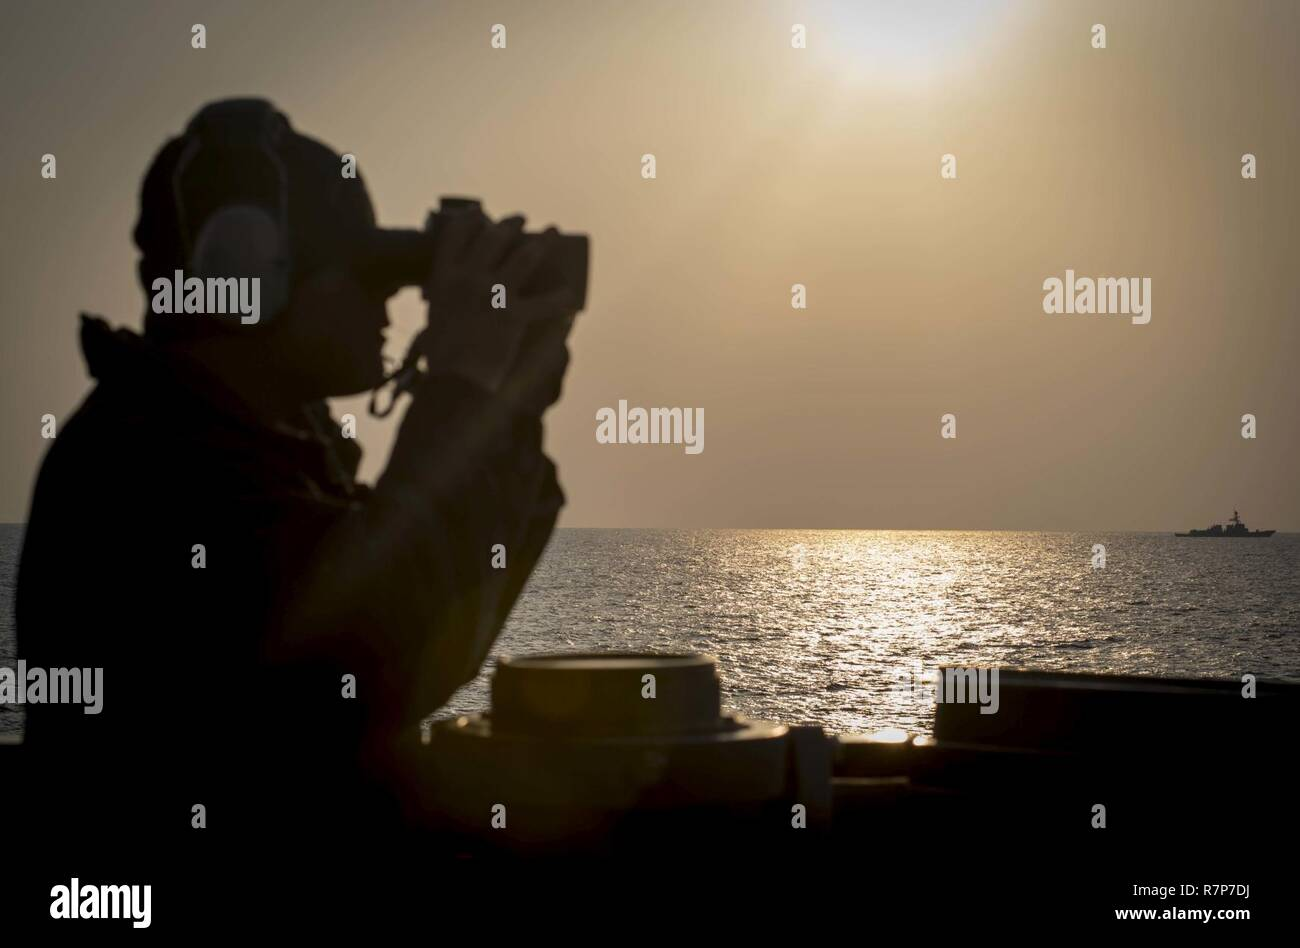 WATERS EAST OF THE KOREAN PENINSULA (March 22, 2017) Seaman Nathaniel Irish, assigned to the Arleigh Burke-class guided-missile destroyer USS Stethem (DDG 63), scans the horizon as the ship participates in surface maneuvers with USS Wayne E. Meyer (DDG 108) and several other U.S. and Republic of Korea Navy ships and submarines during Foal Eagle (FE) 17. FE 17 is a series of annual training events designed to increase readiness to defend the ROK, protect the region, and maintain stability in the Korean Peninsula. - Stock Image